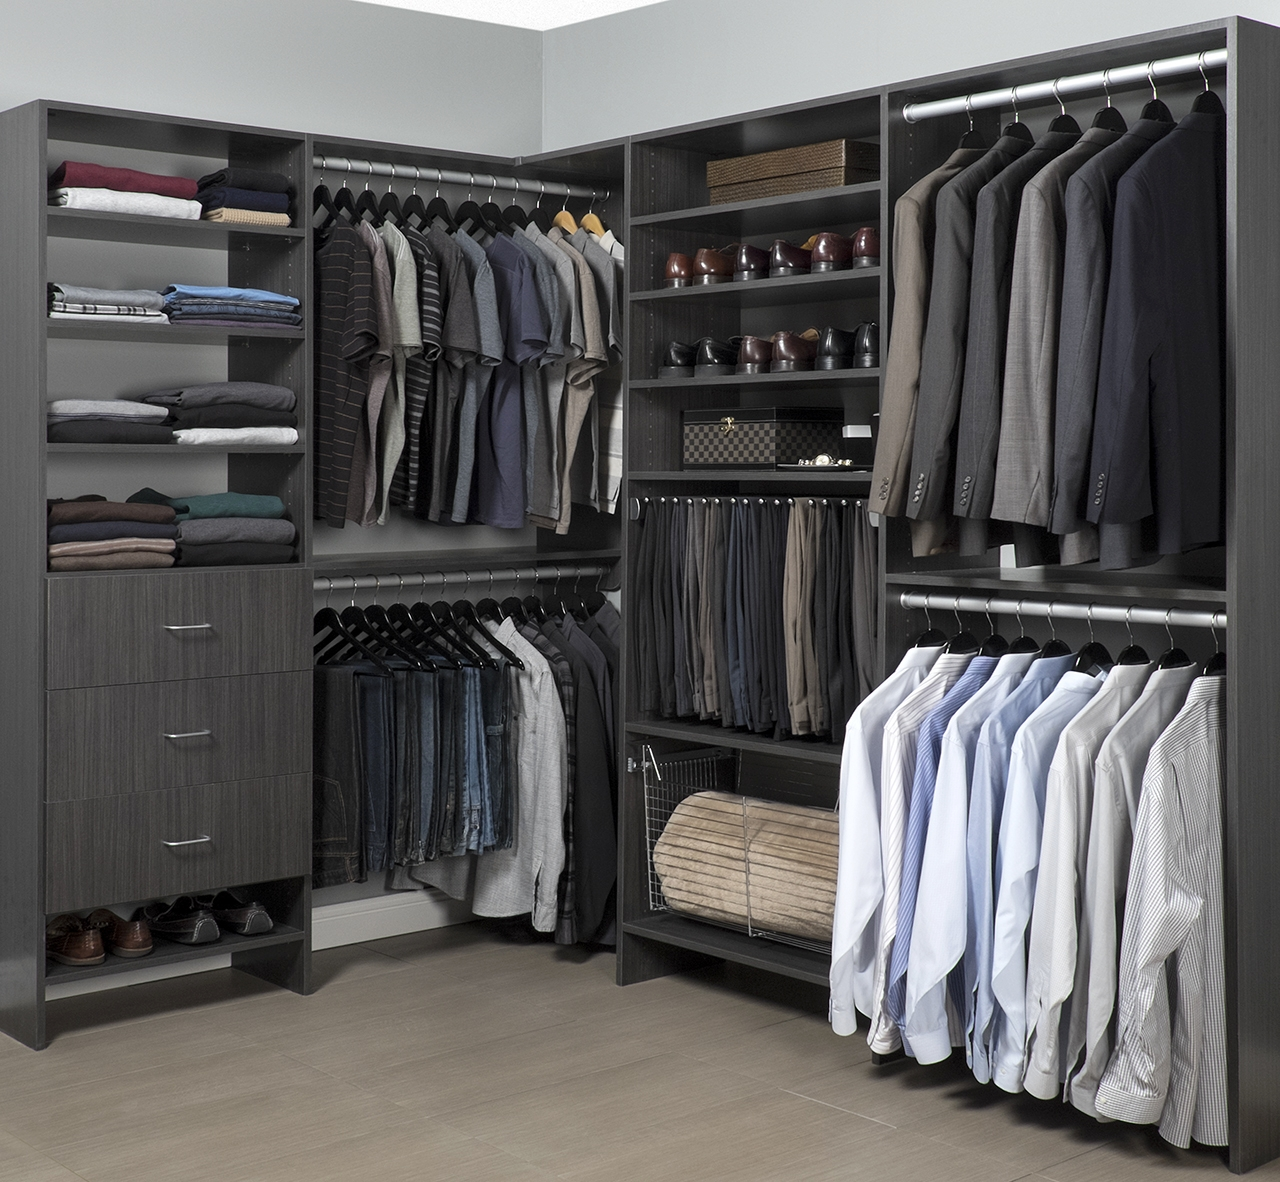 If possible, simplify your space by leaving the top of your closet shelving and the floor of your closet clear.